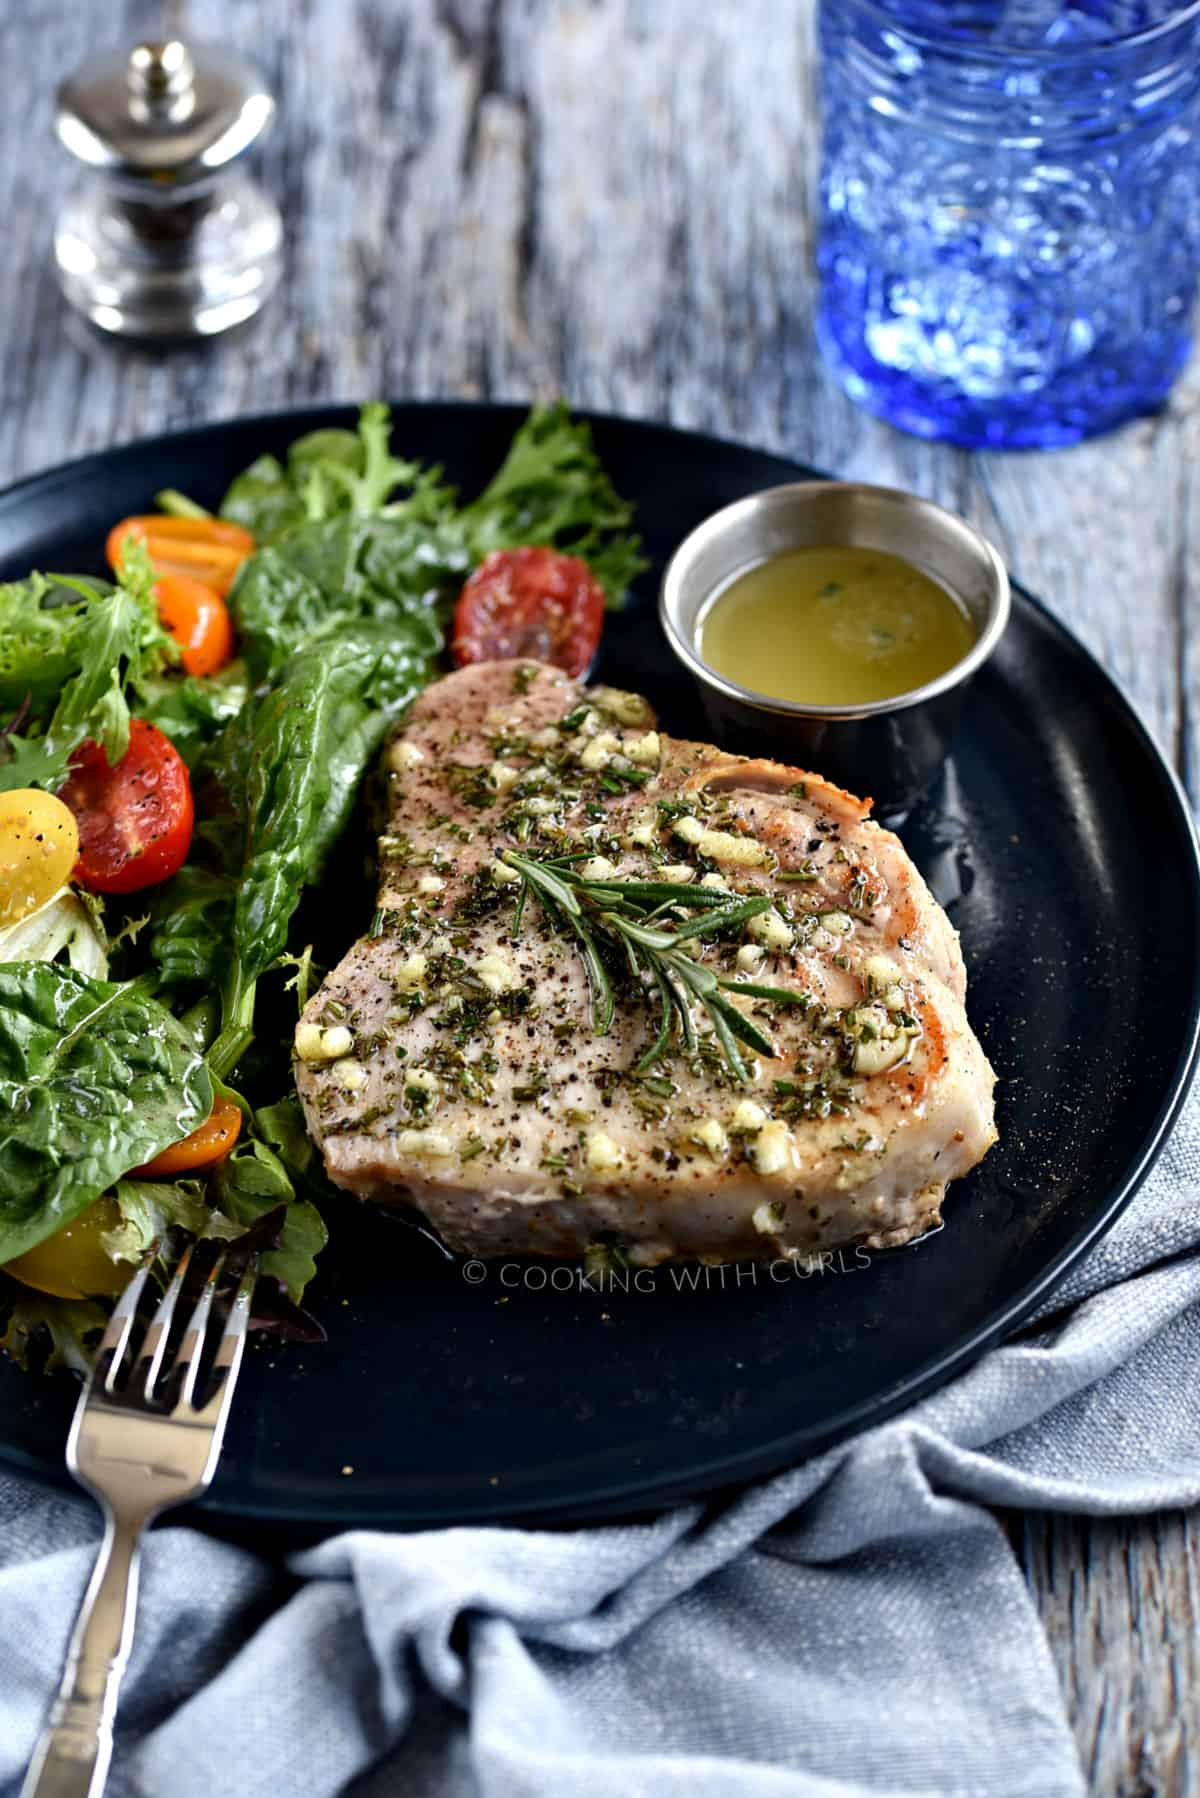 Thick, bone-in pork chop topped with garlic-rosemary butter with a green salad and cherry tomatoes on the side.